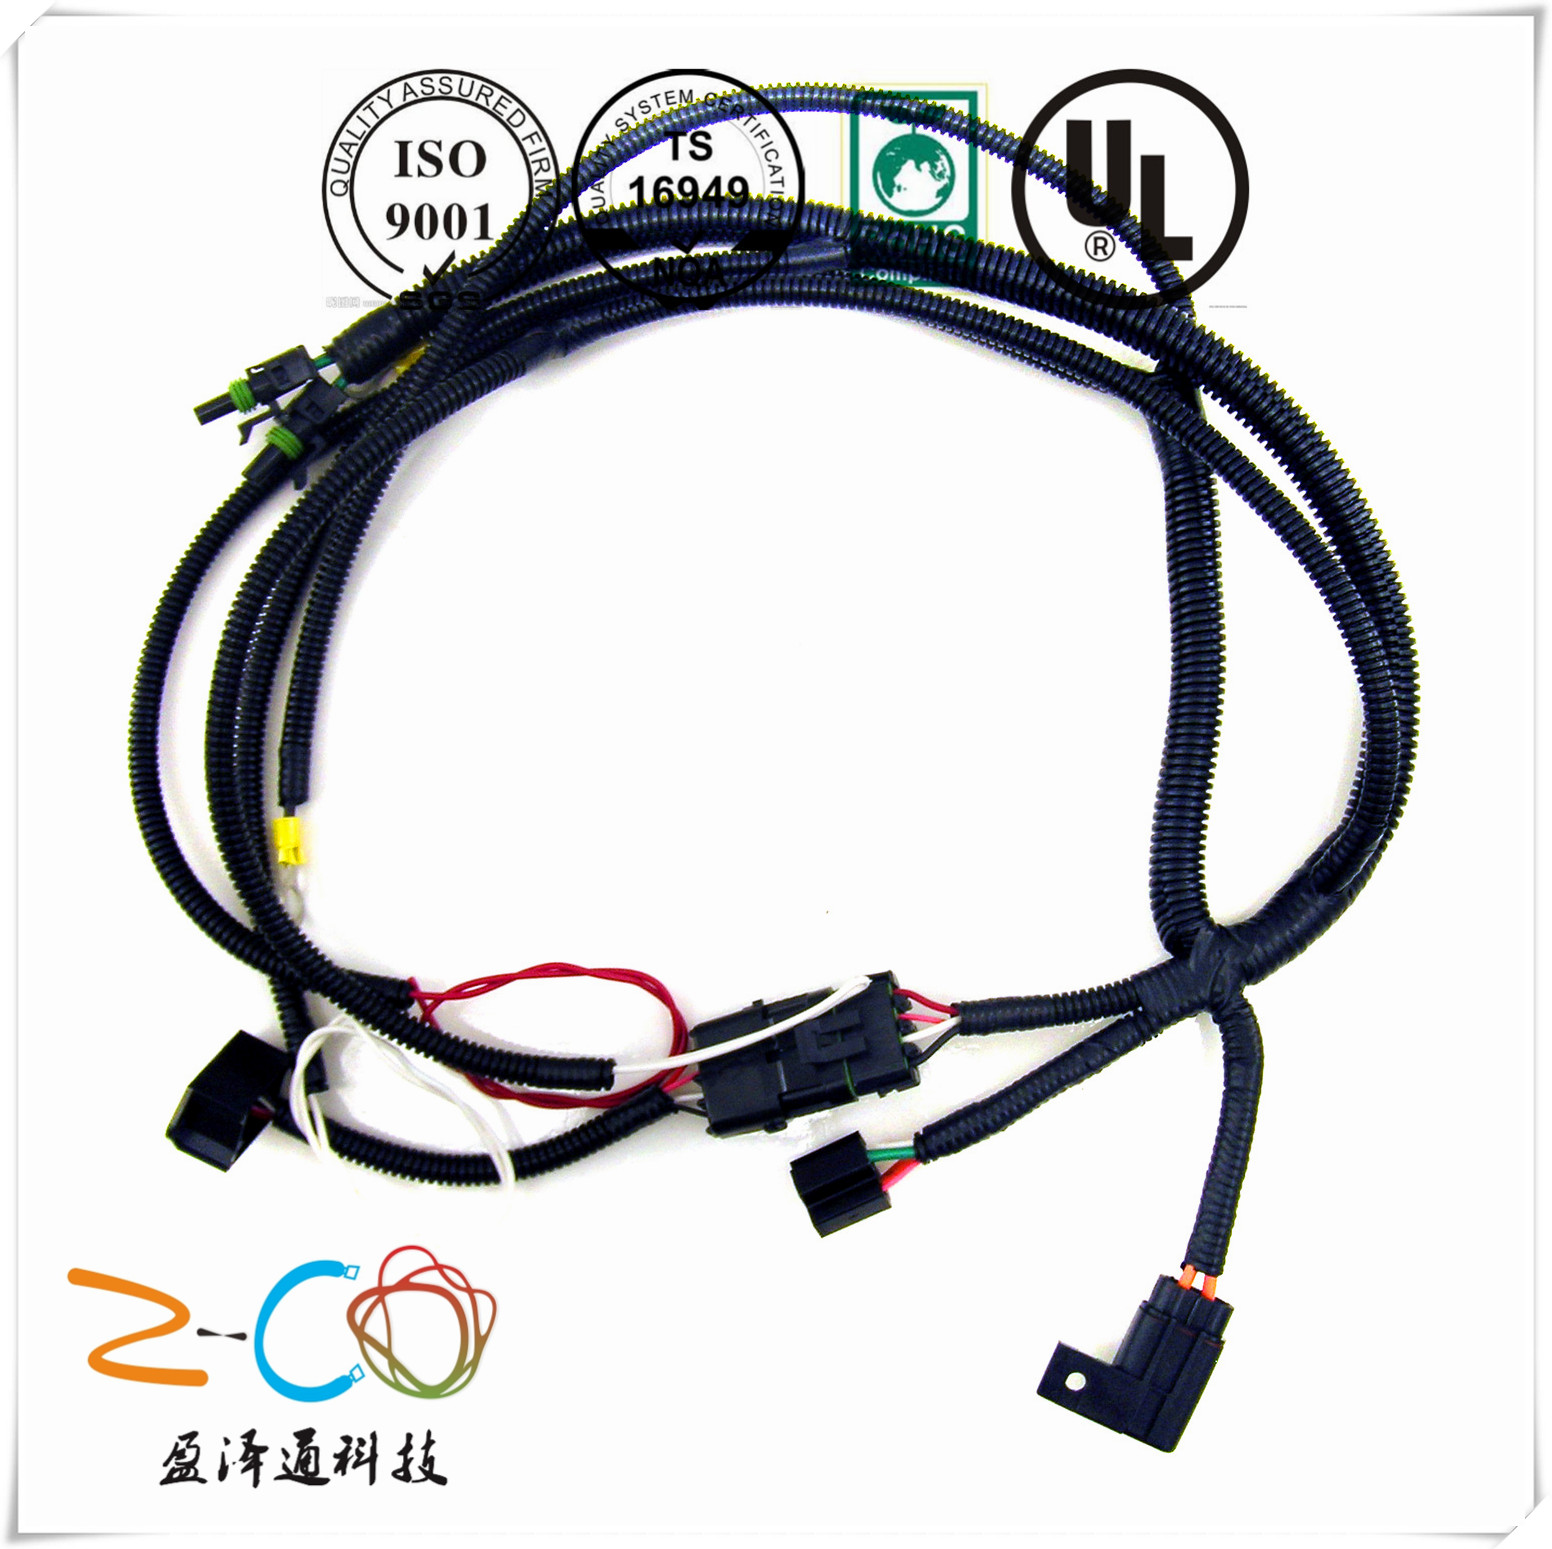 Good quality wire harness and cable assembly manufacturer from China: Z-Co  technology  Products Center